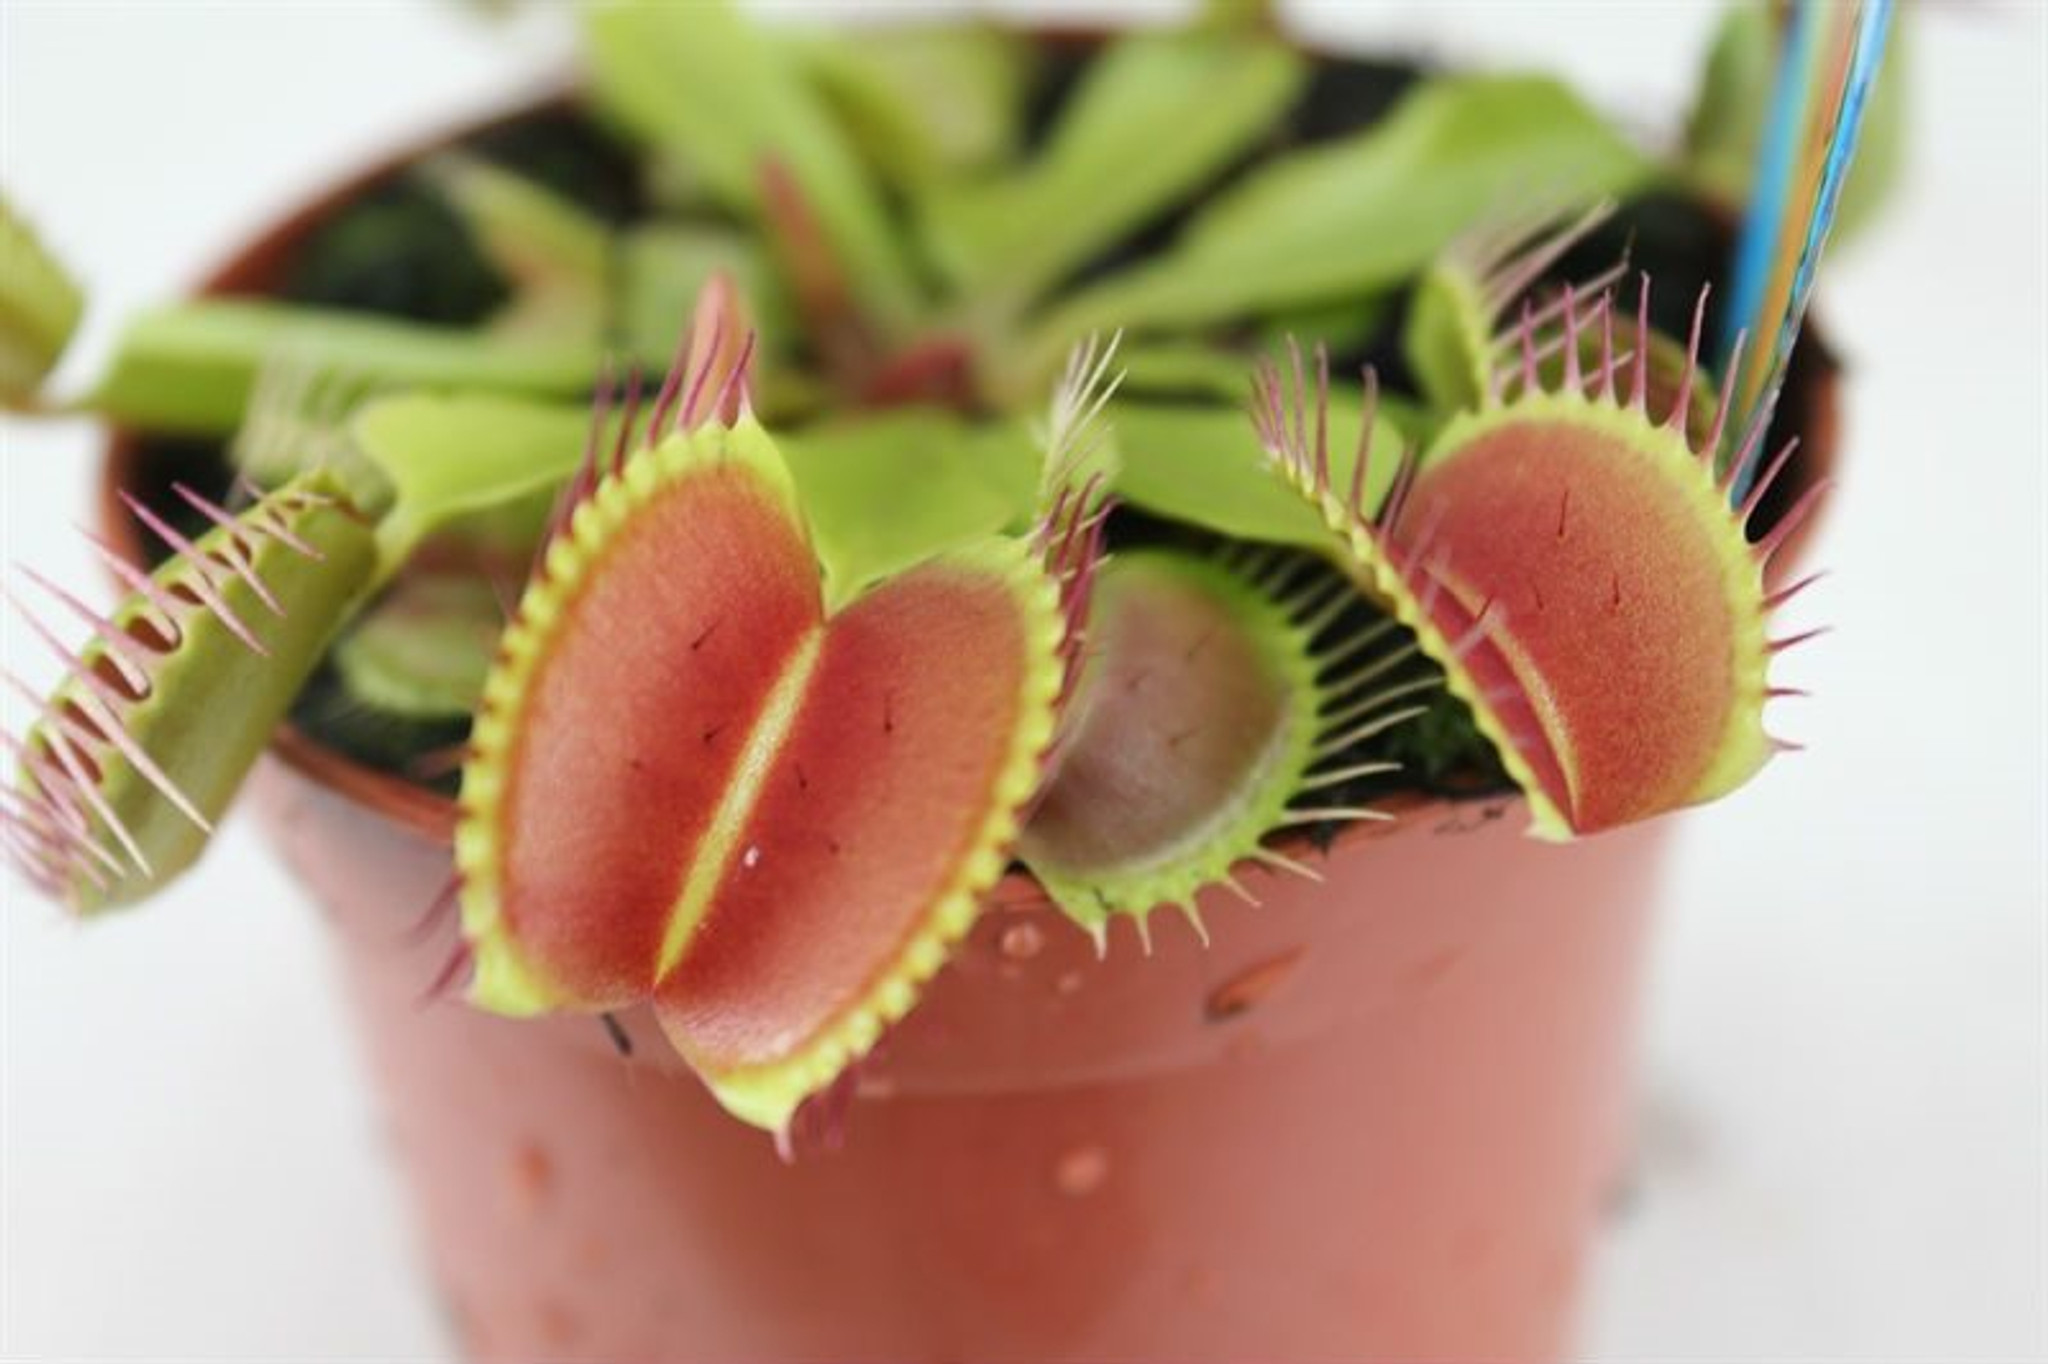 Venus Flytrap leaves